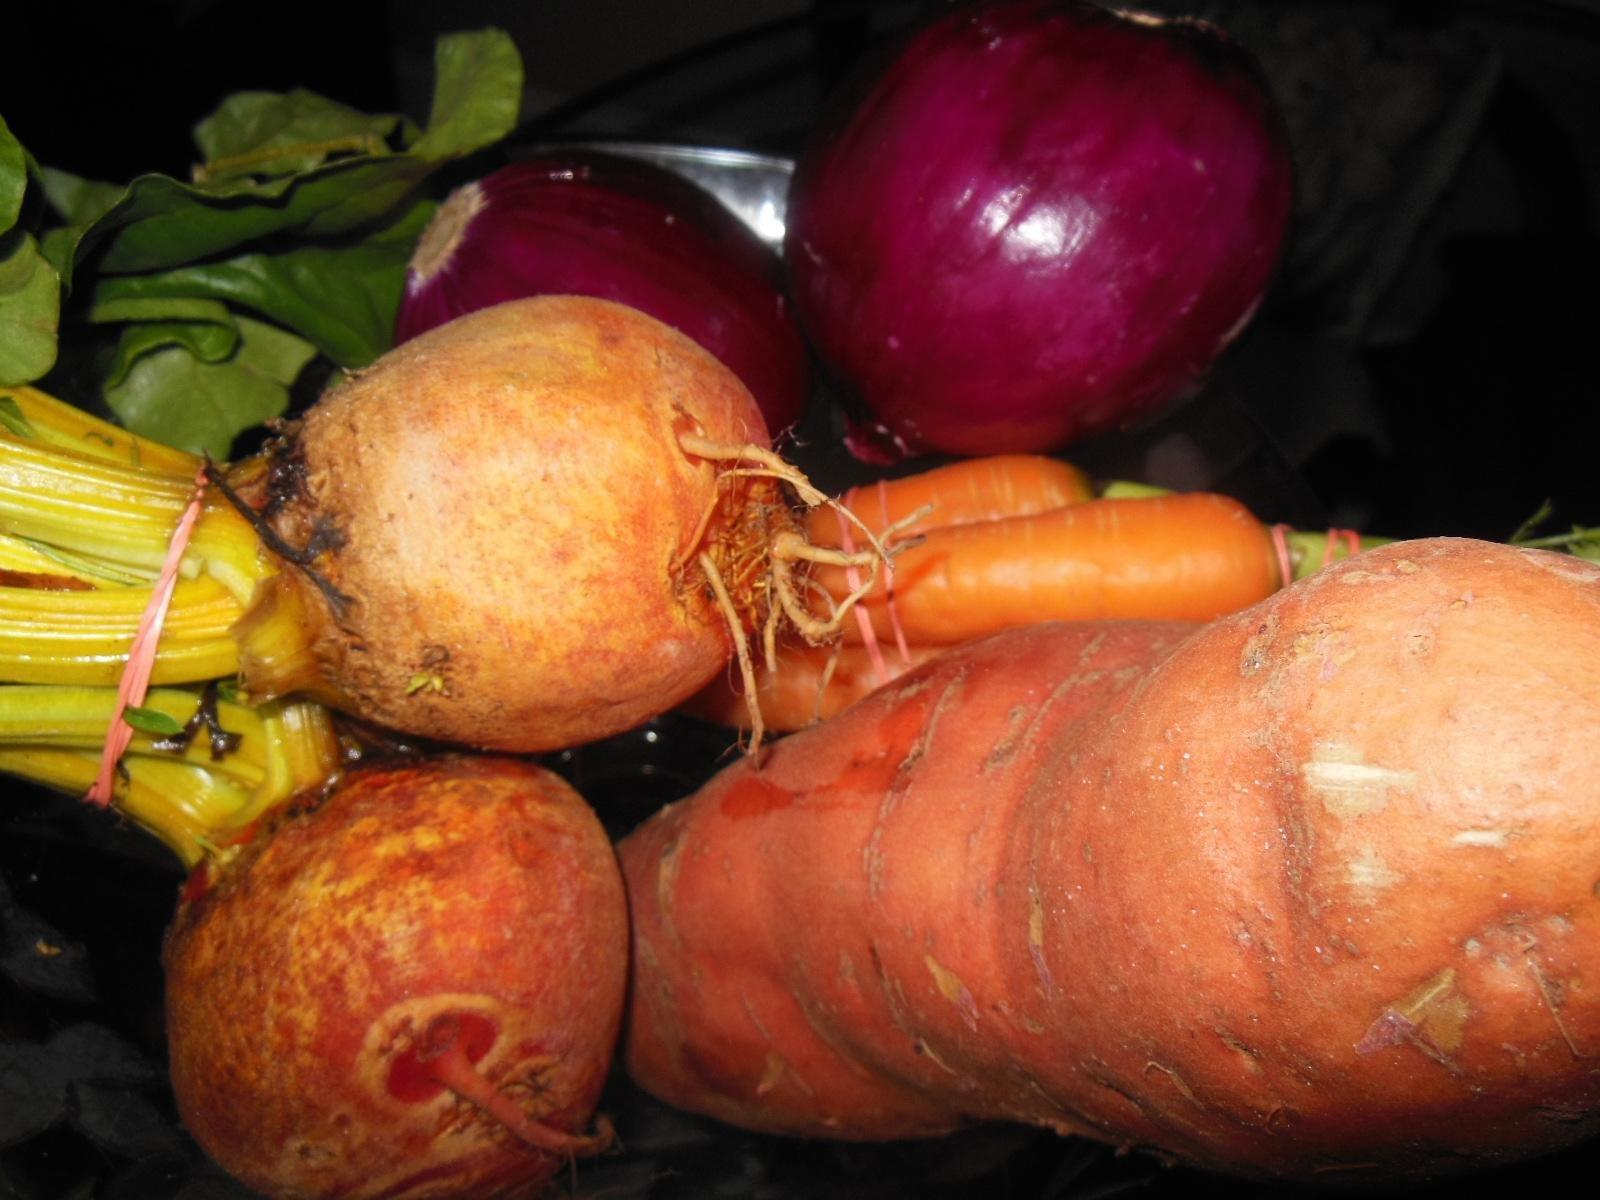 Can Root Veggies Regulate Blood Sugar Levels?